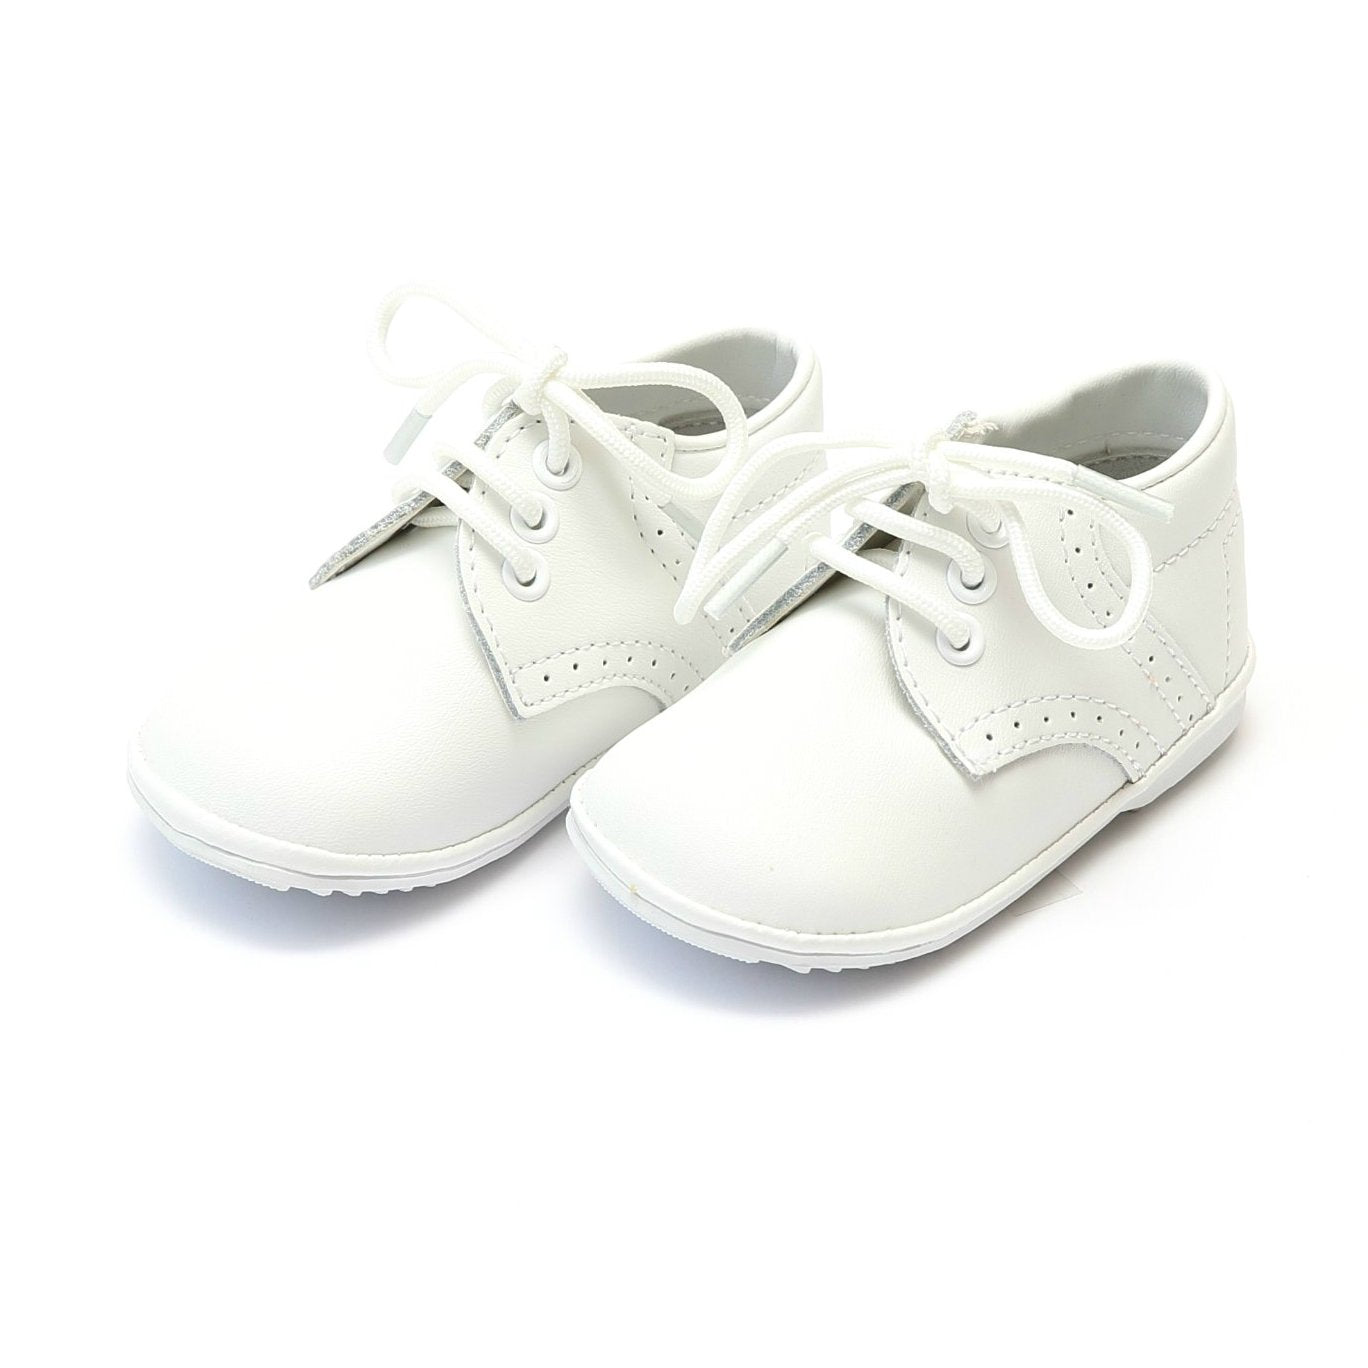 James Boy's White Leather Lace Up Shoe